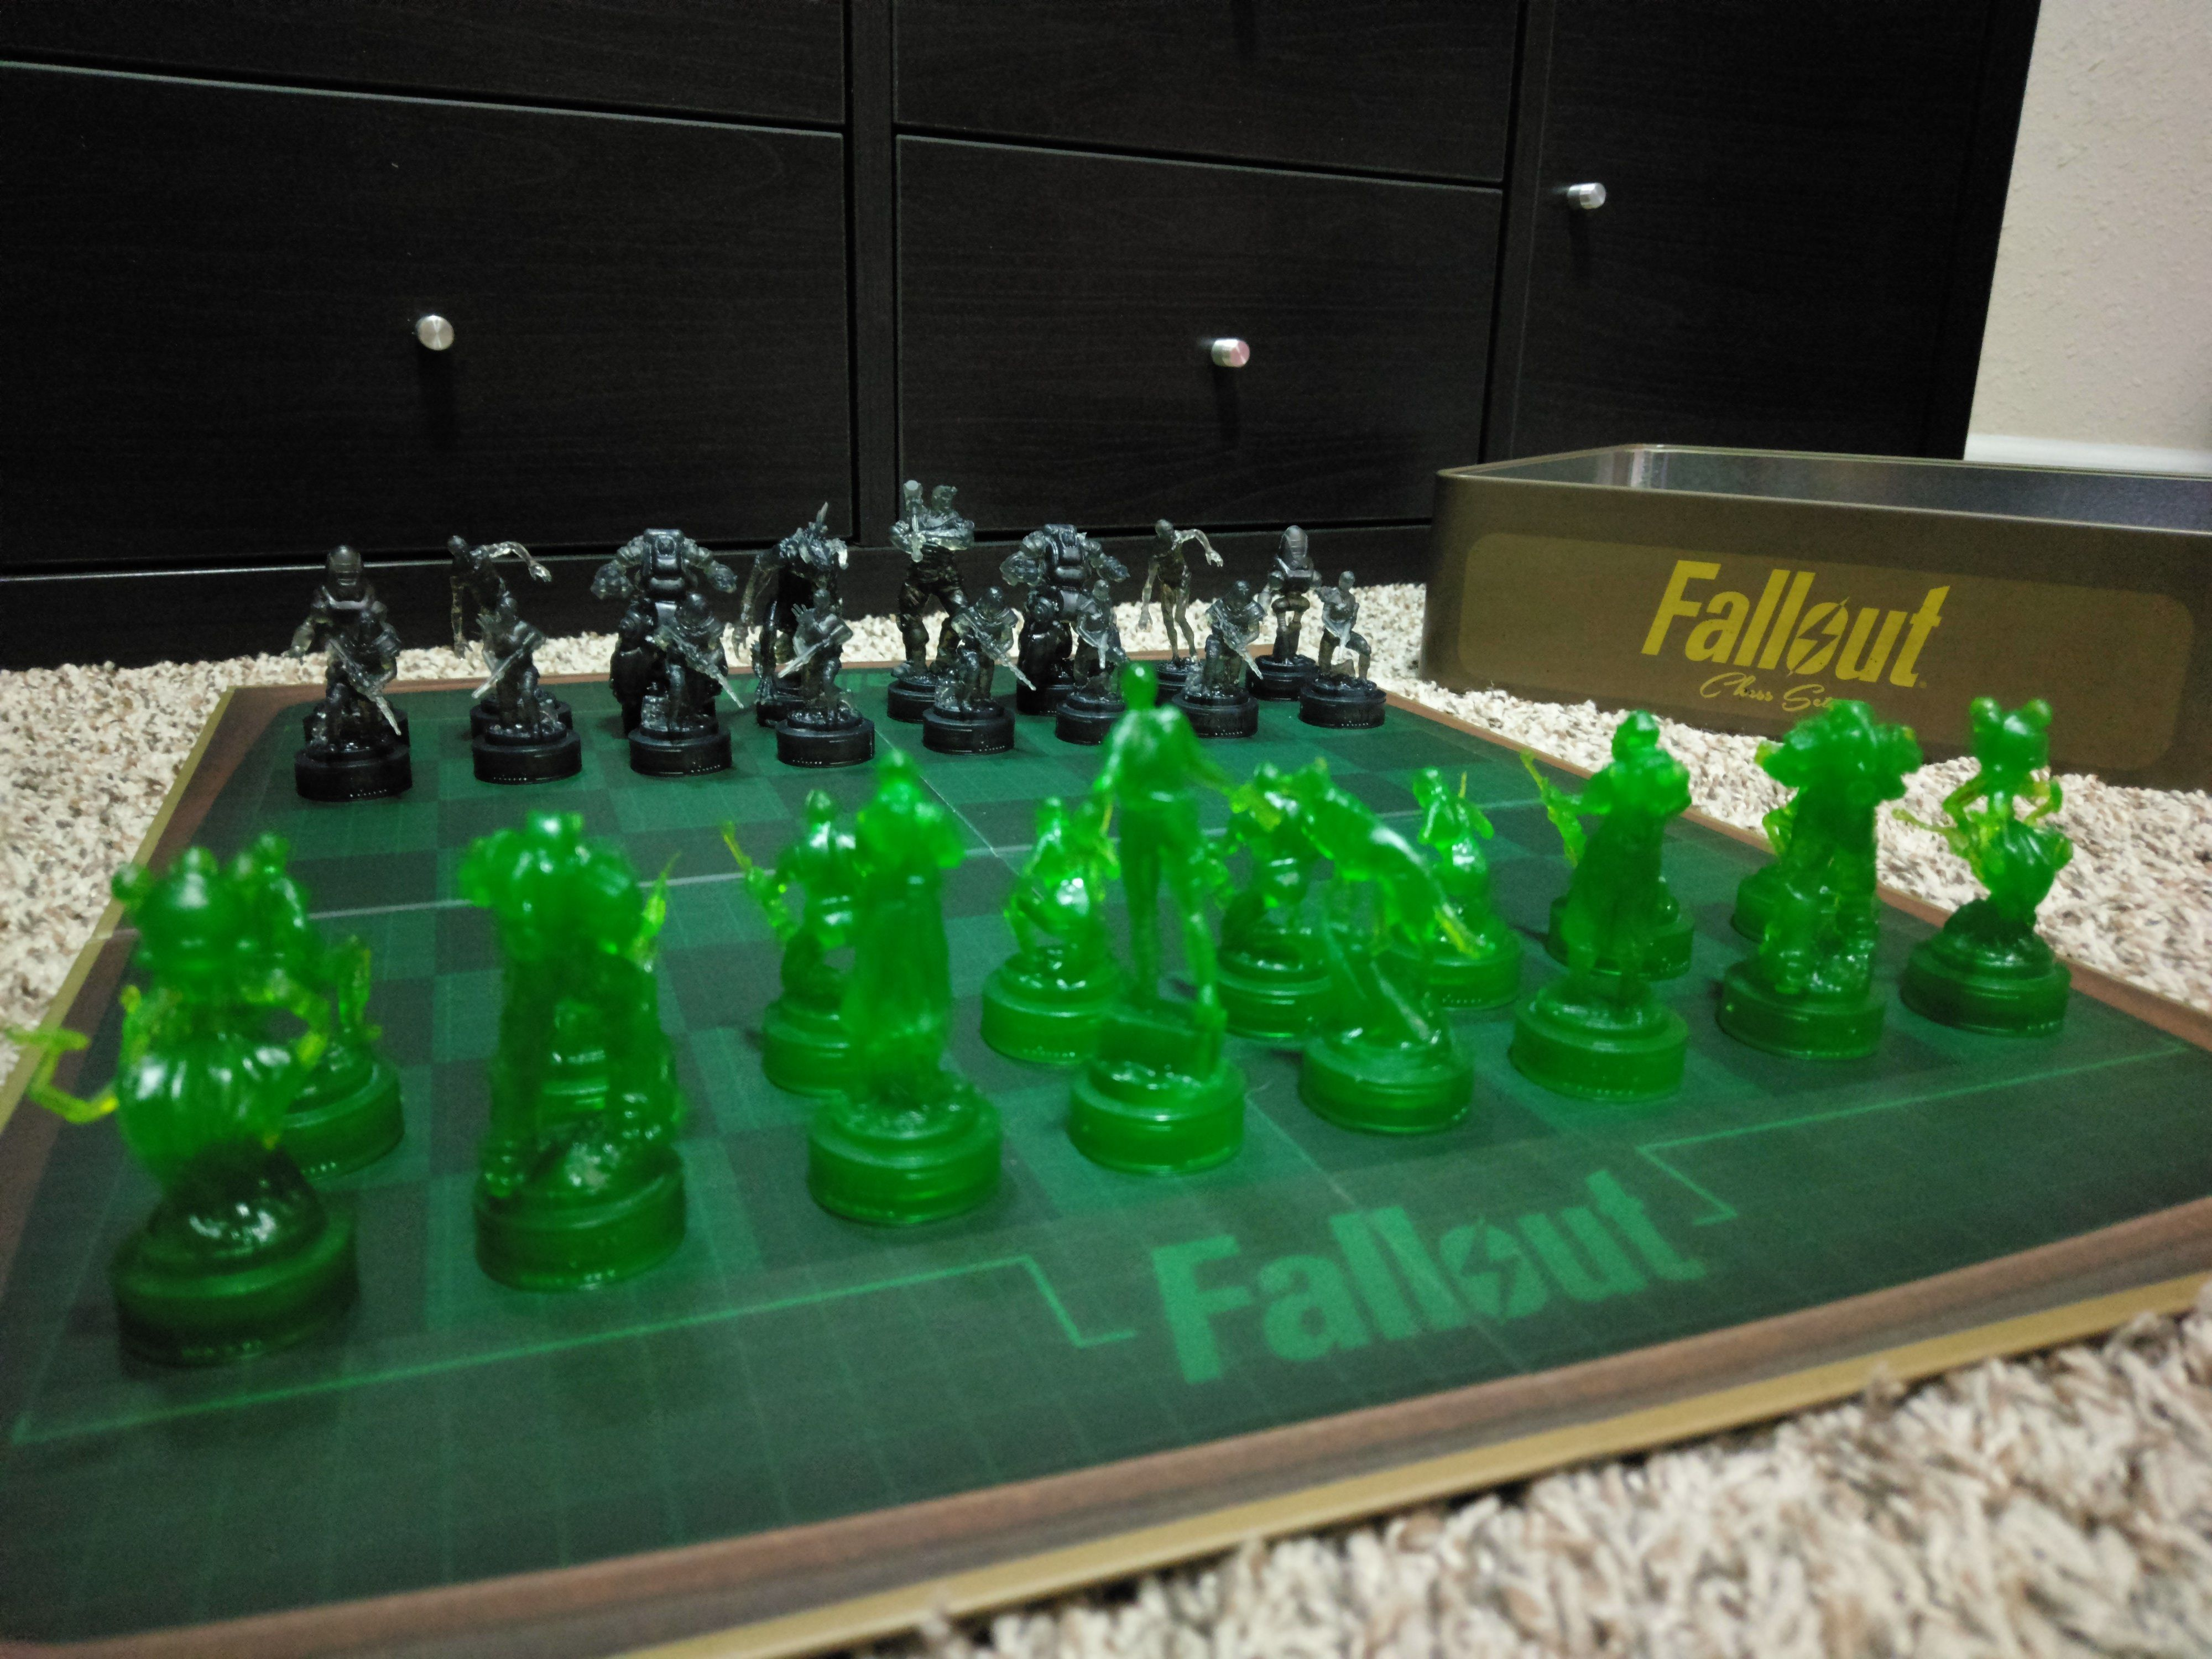 Fallout Chess Set LatestGames Chess Fallout Games